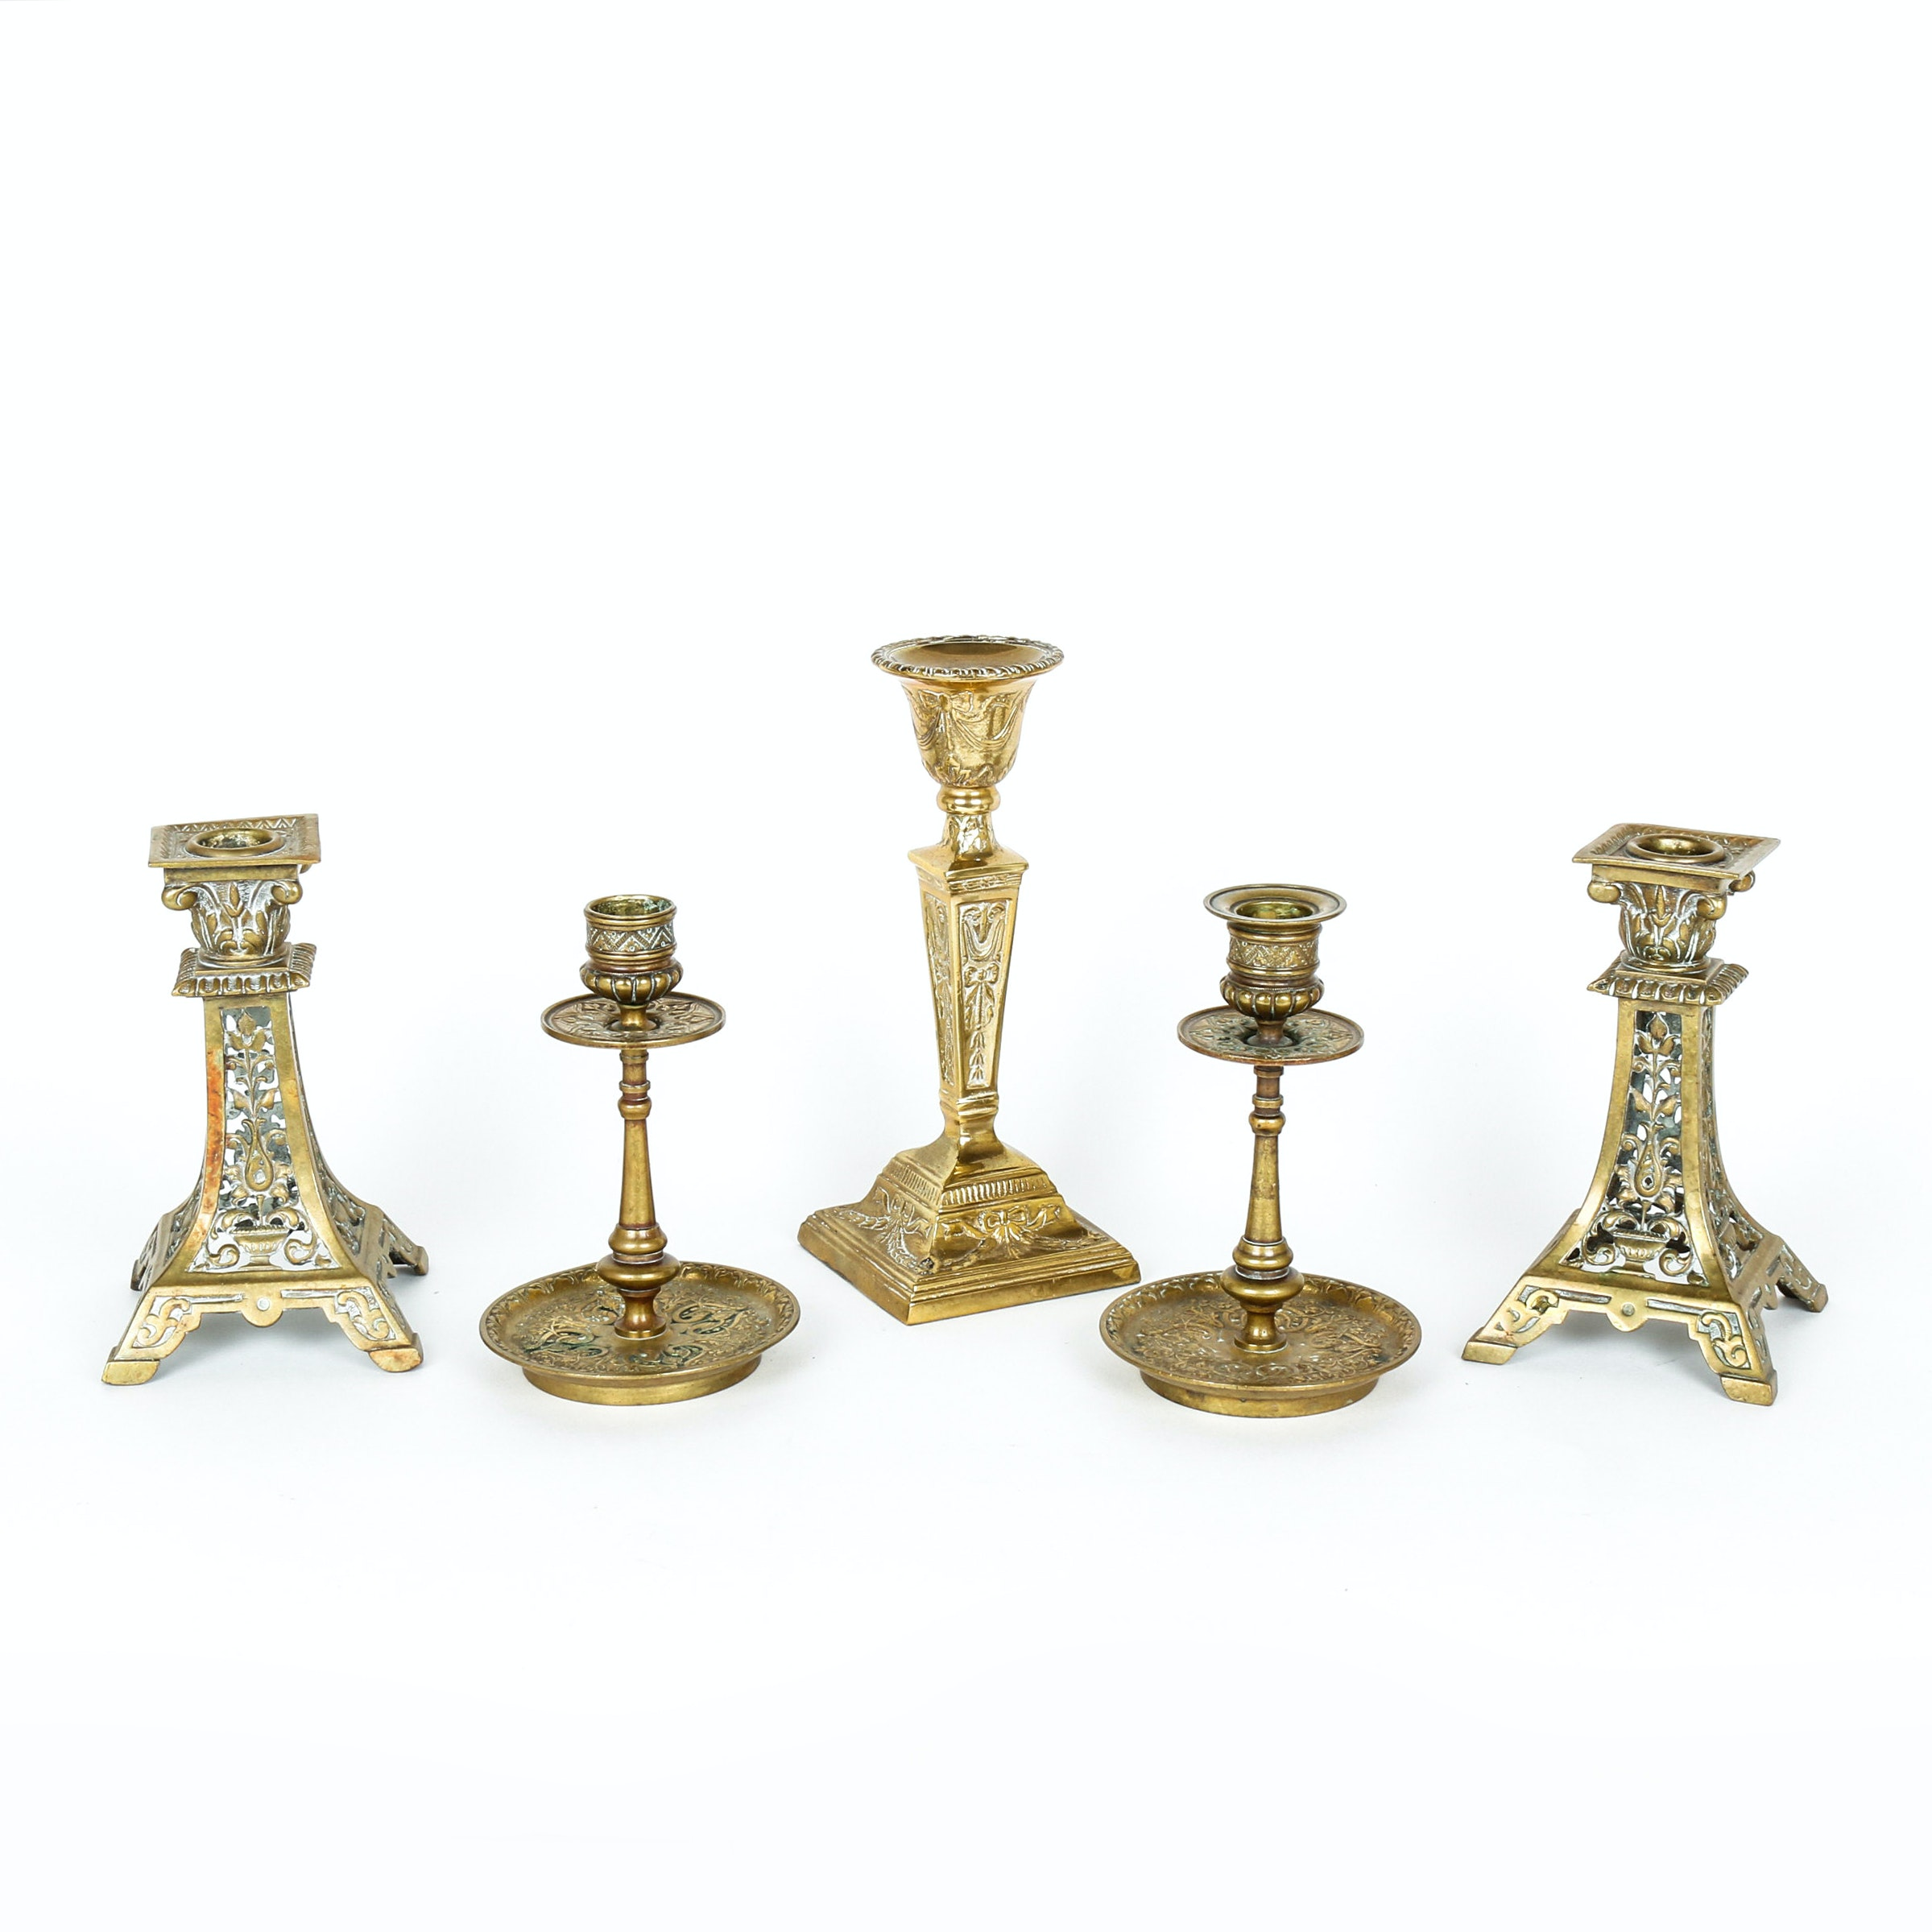 Group of Five Ornate Brass Candlestick Holders Including Andrea by Sadek